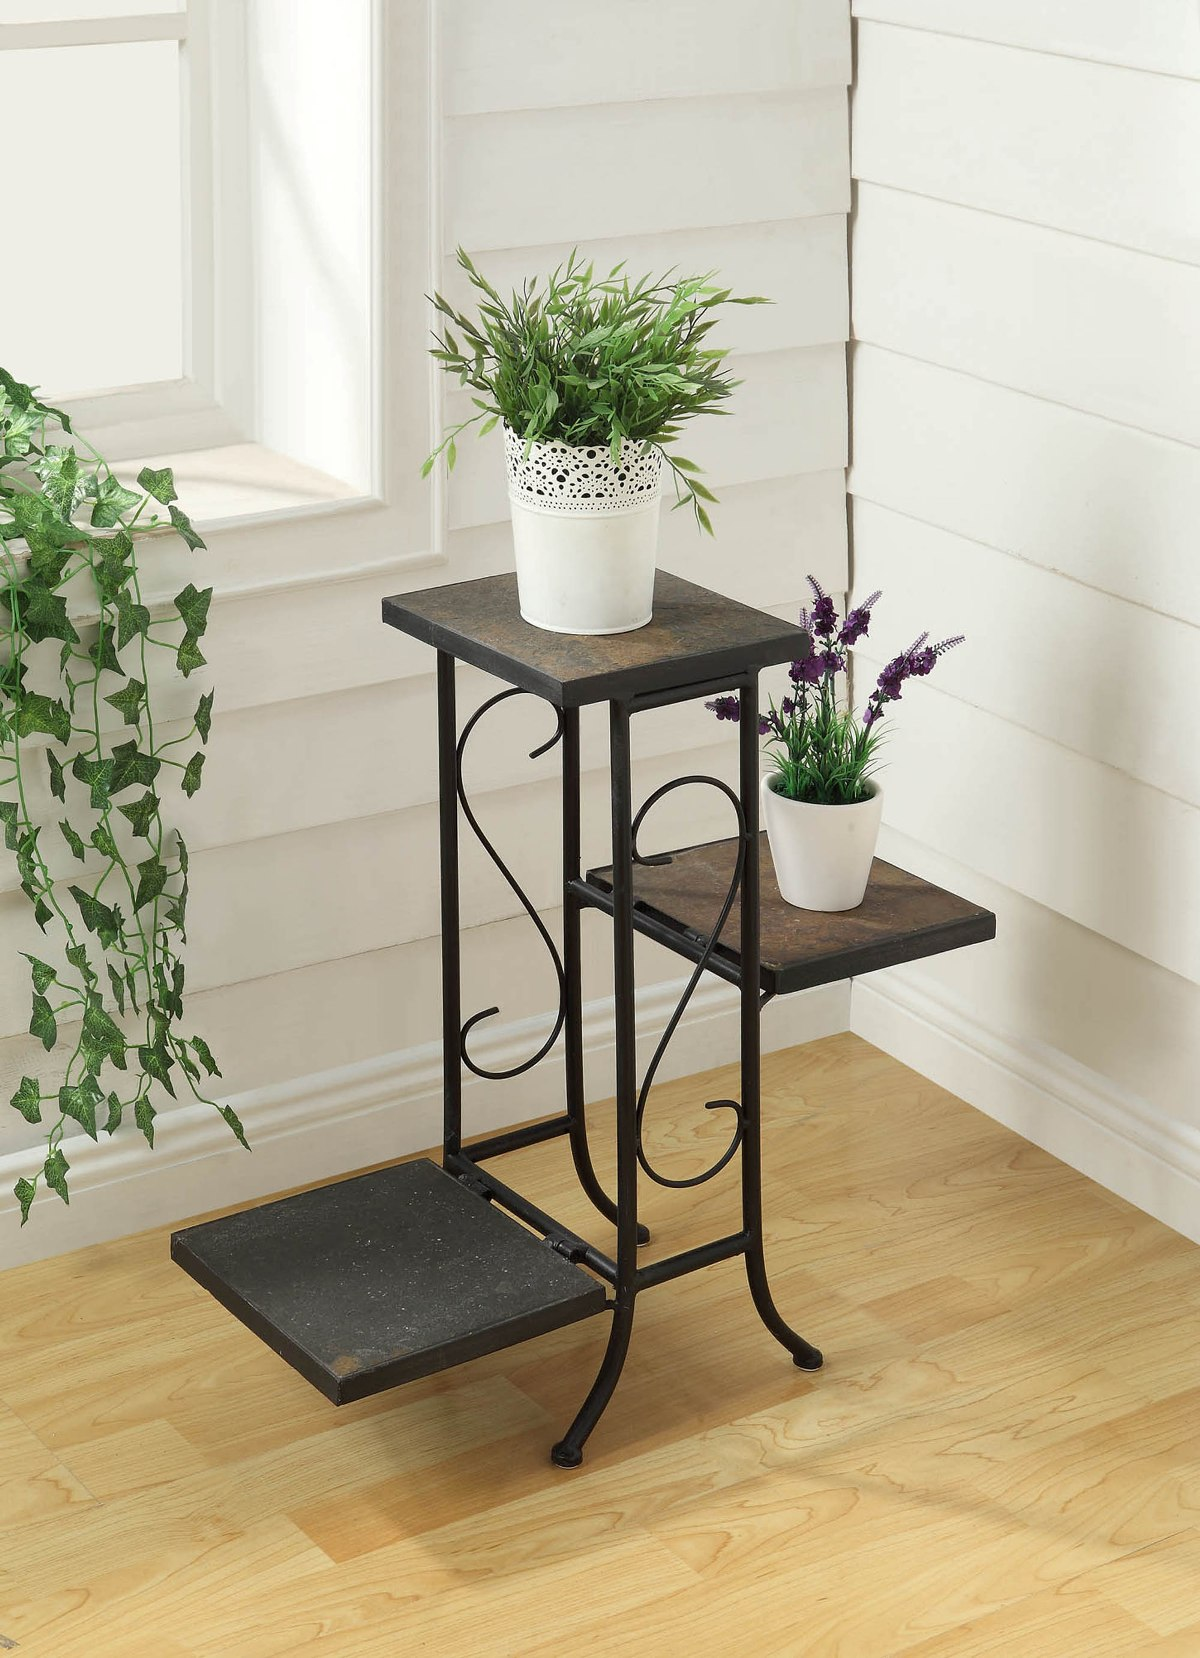 3 Tier Plant Stand w/ Slate Top - 4D Concepts 601608